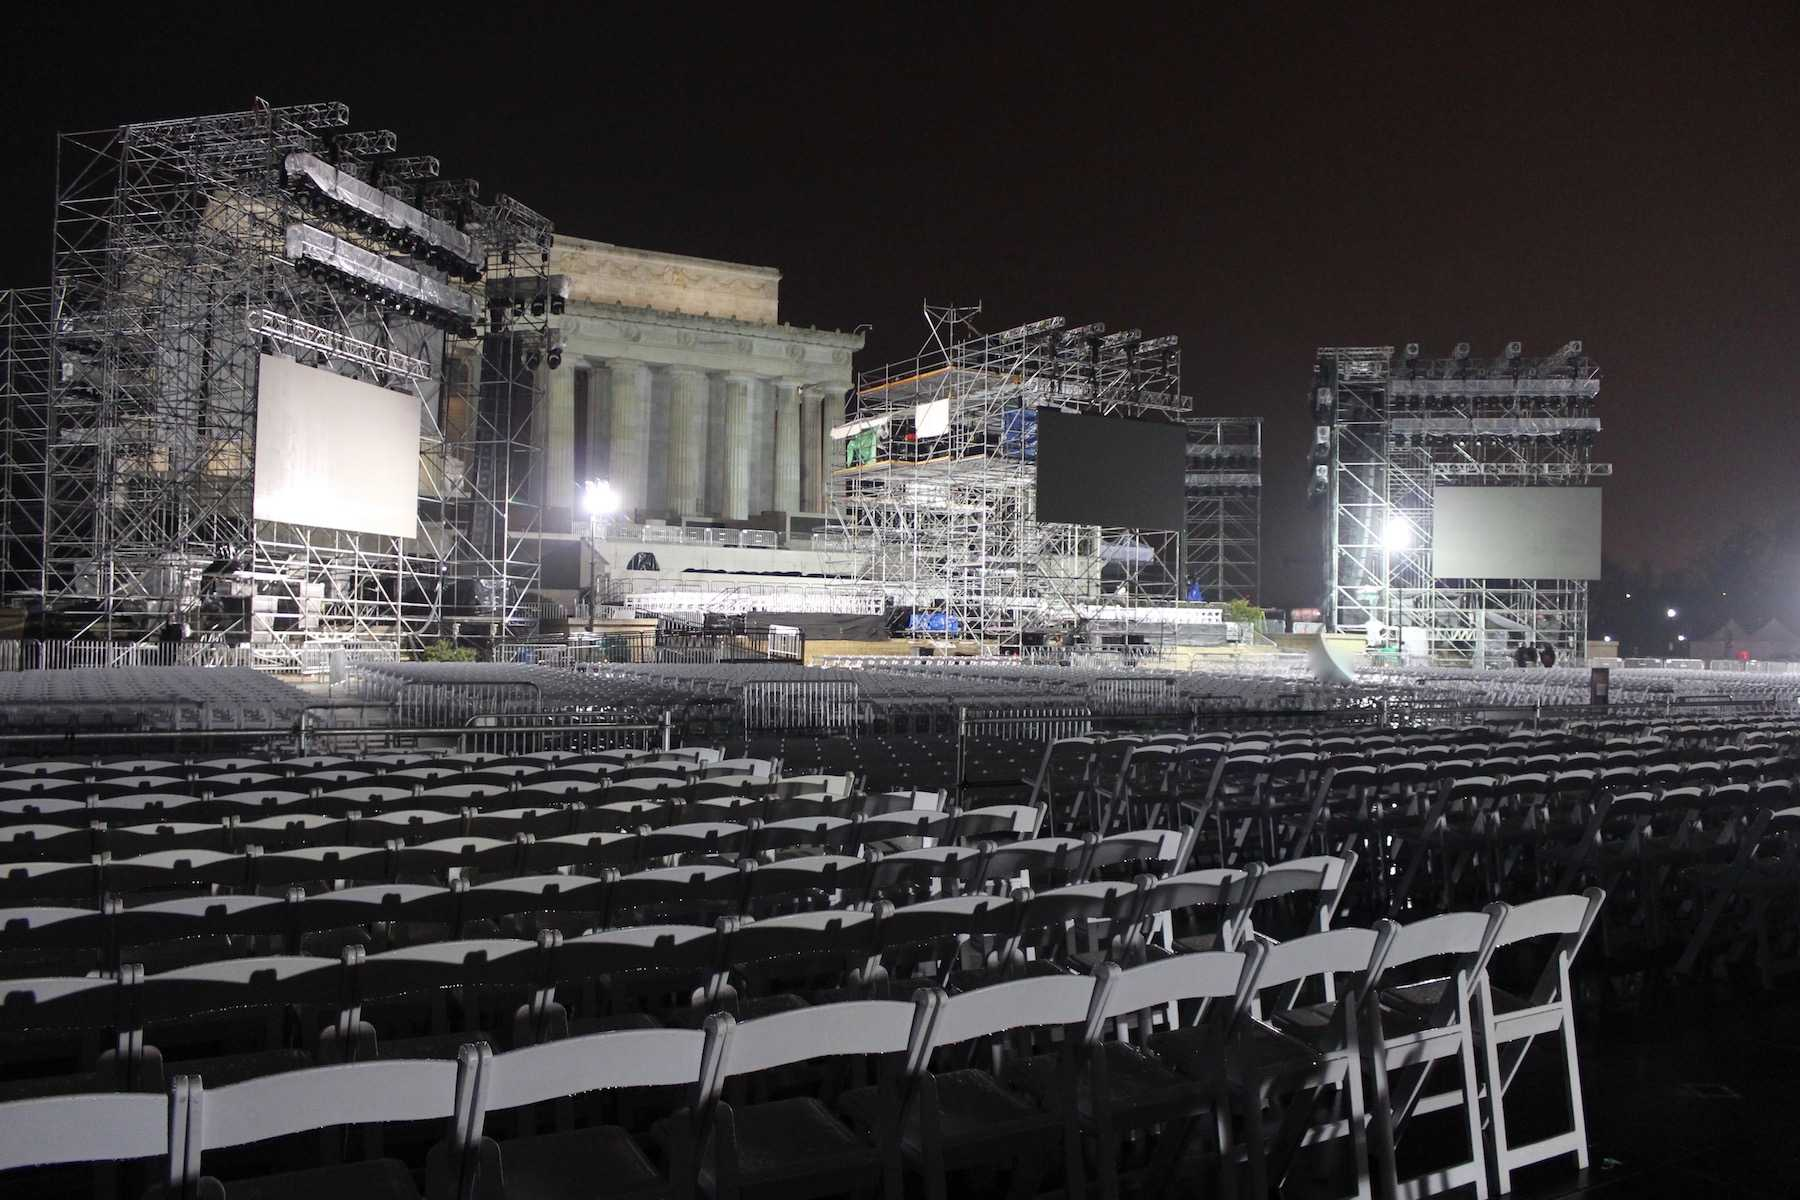 The Inaugural Stage with the Lincoln Memorial in the background.